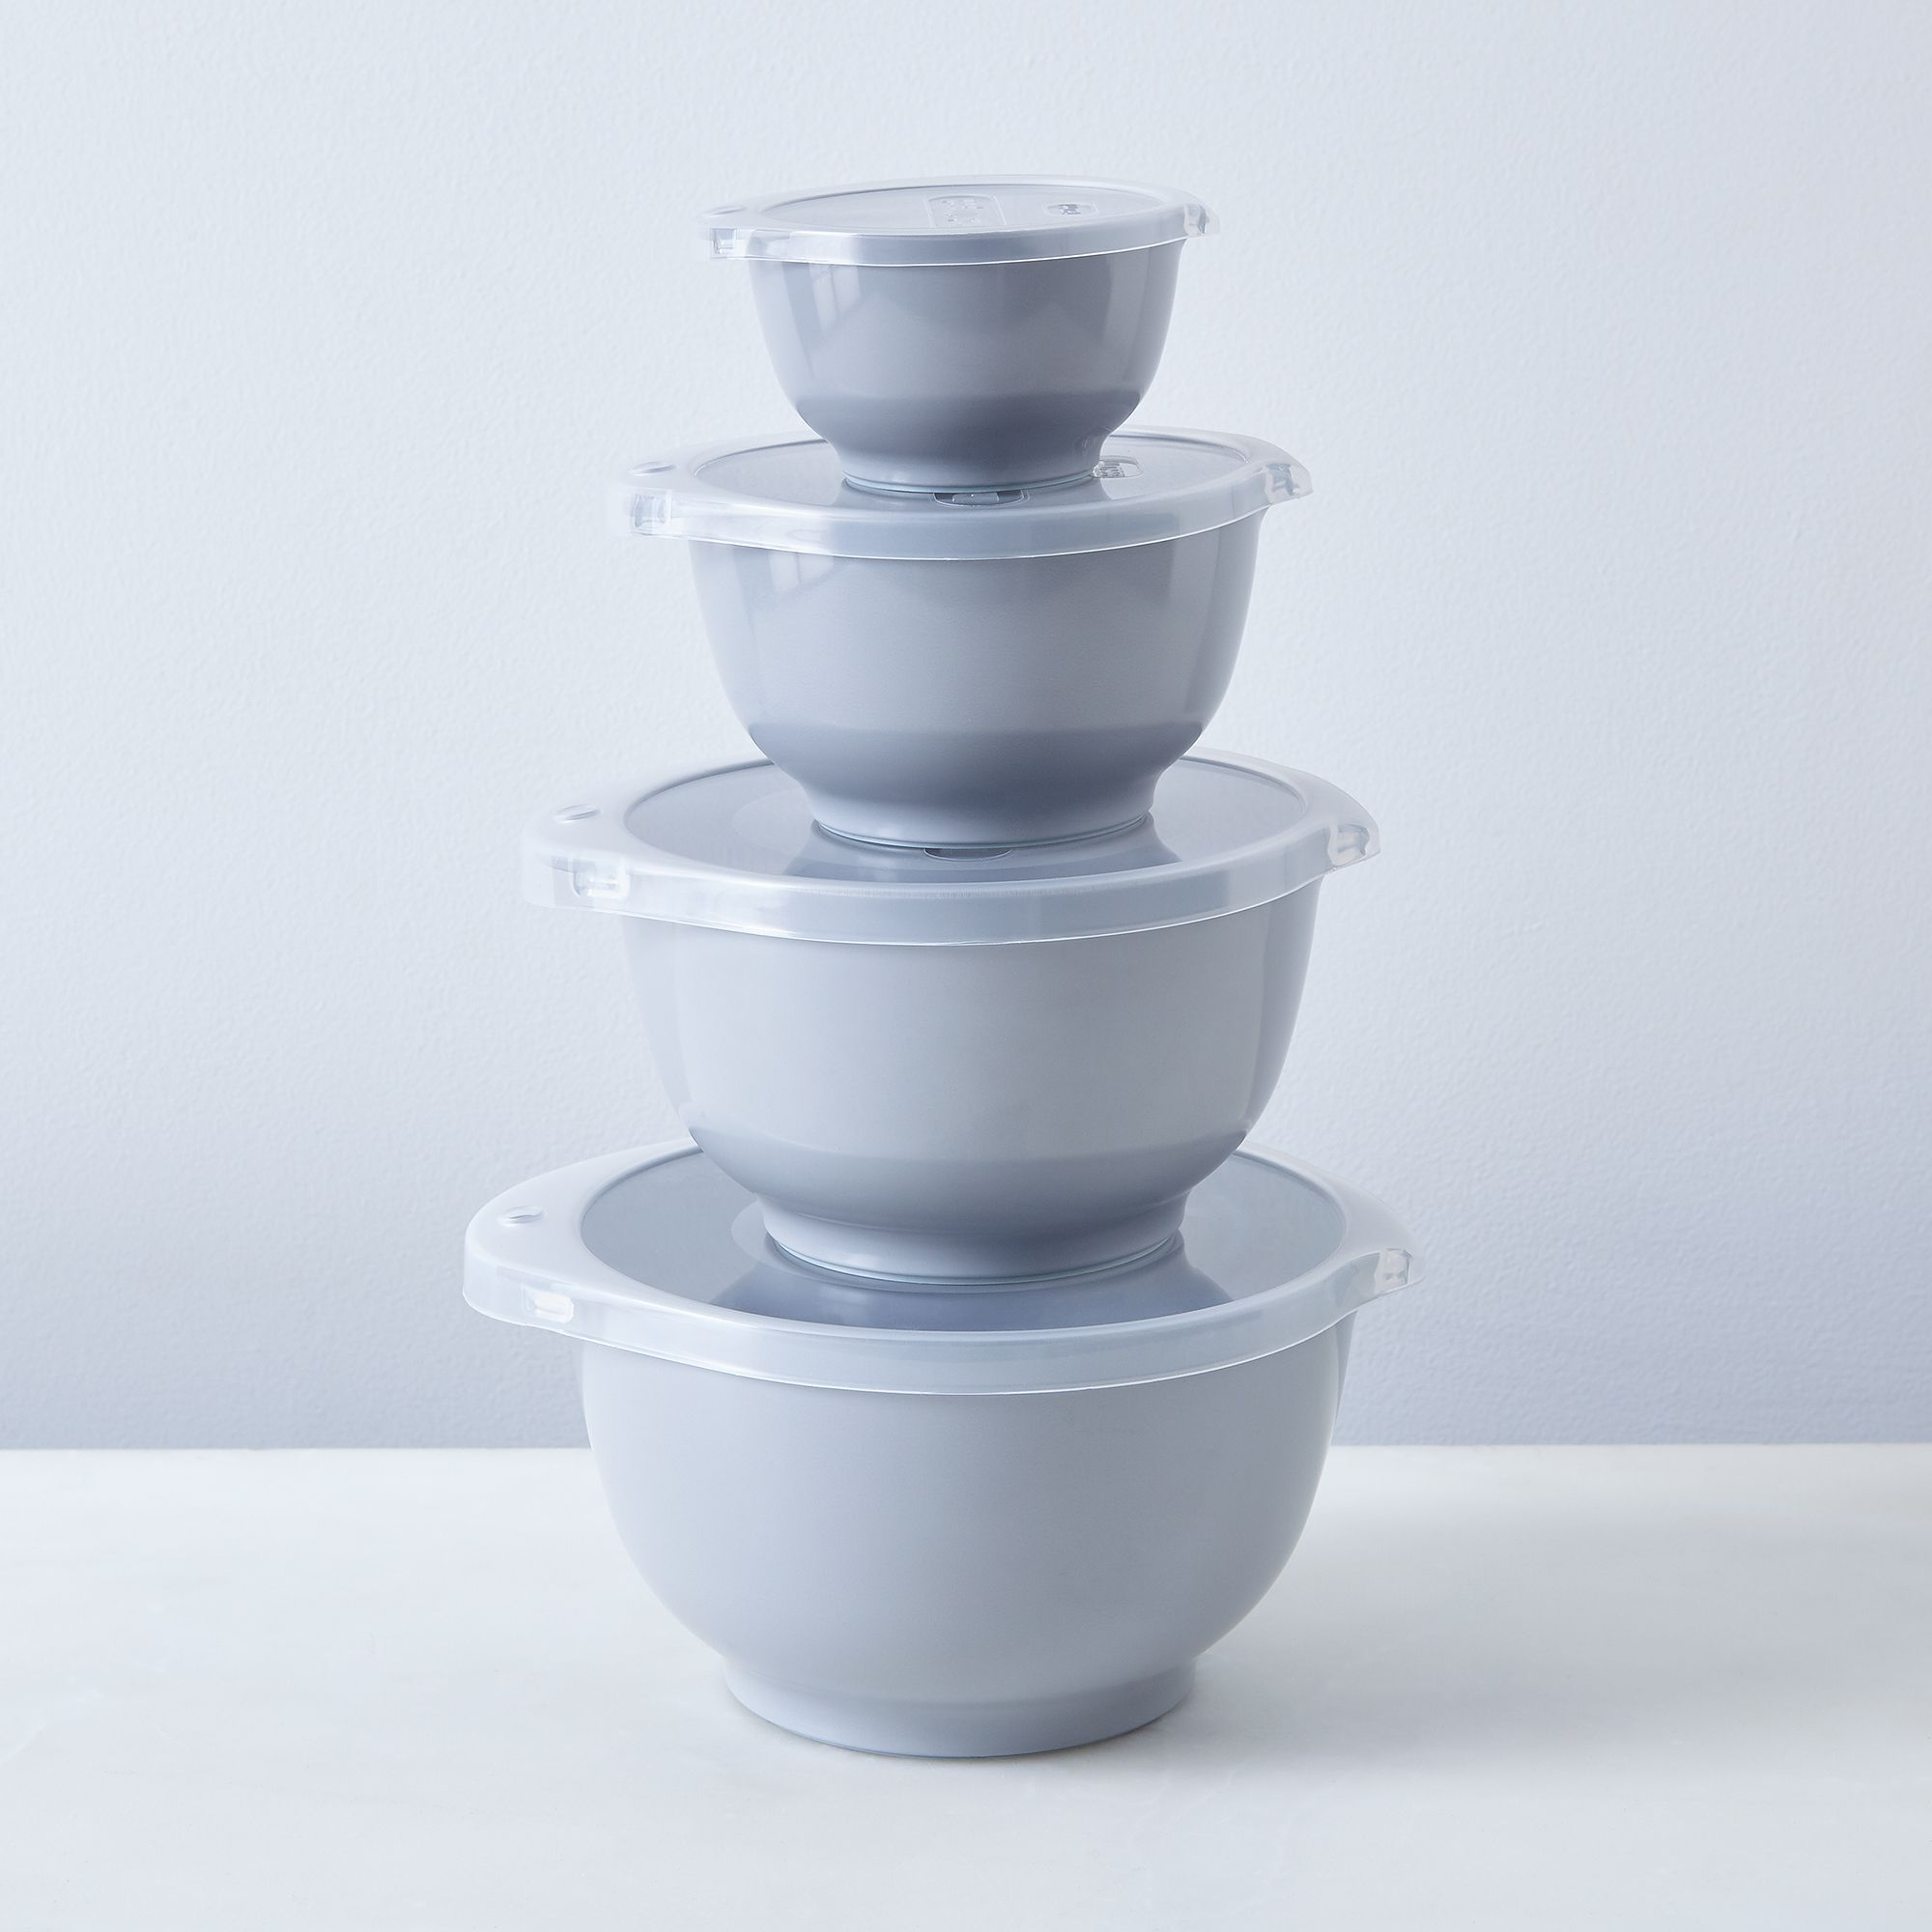 E5c9321d 27b1 4b23 a095 c235b0600c1d  2016 1004 rosti tower mini mixing bowl set grey silo rocky luten 0319